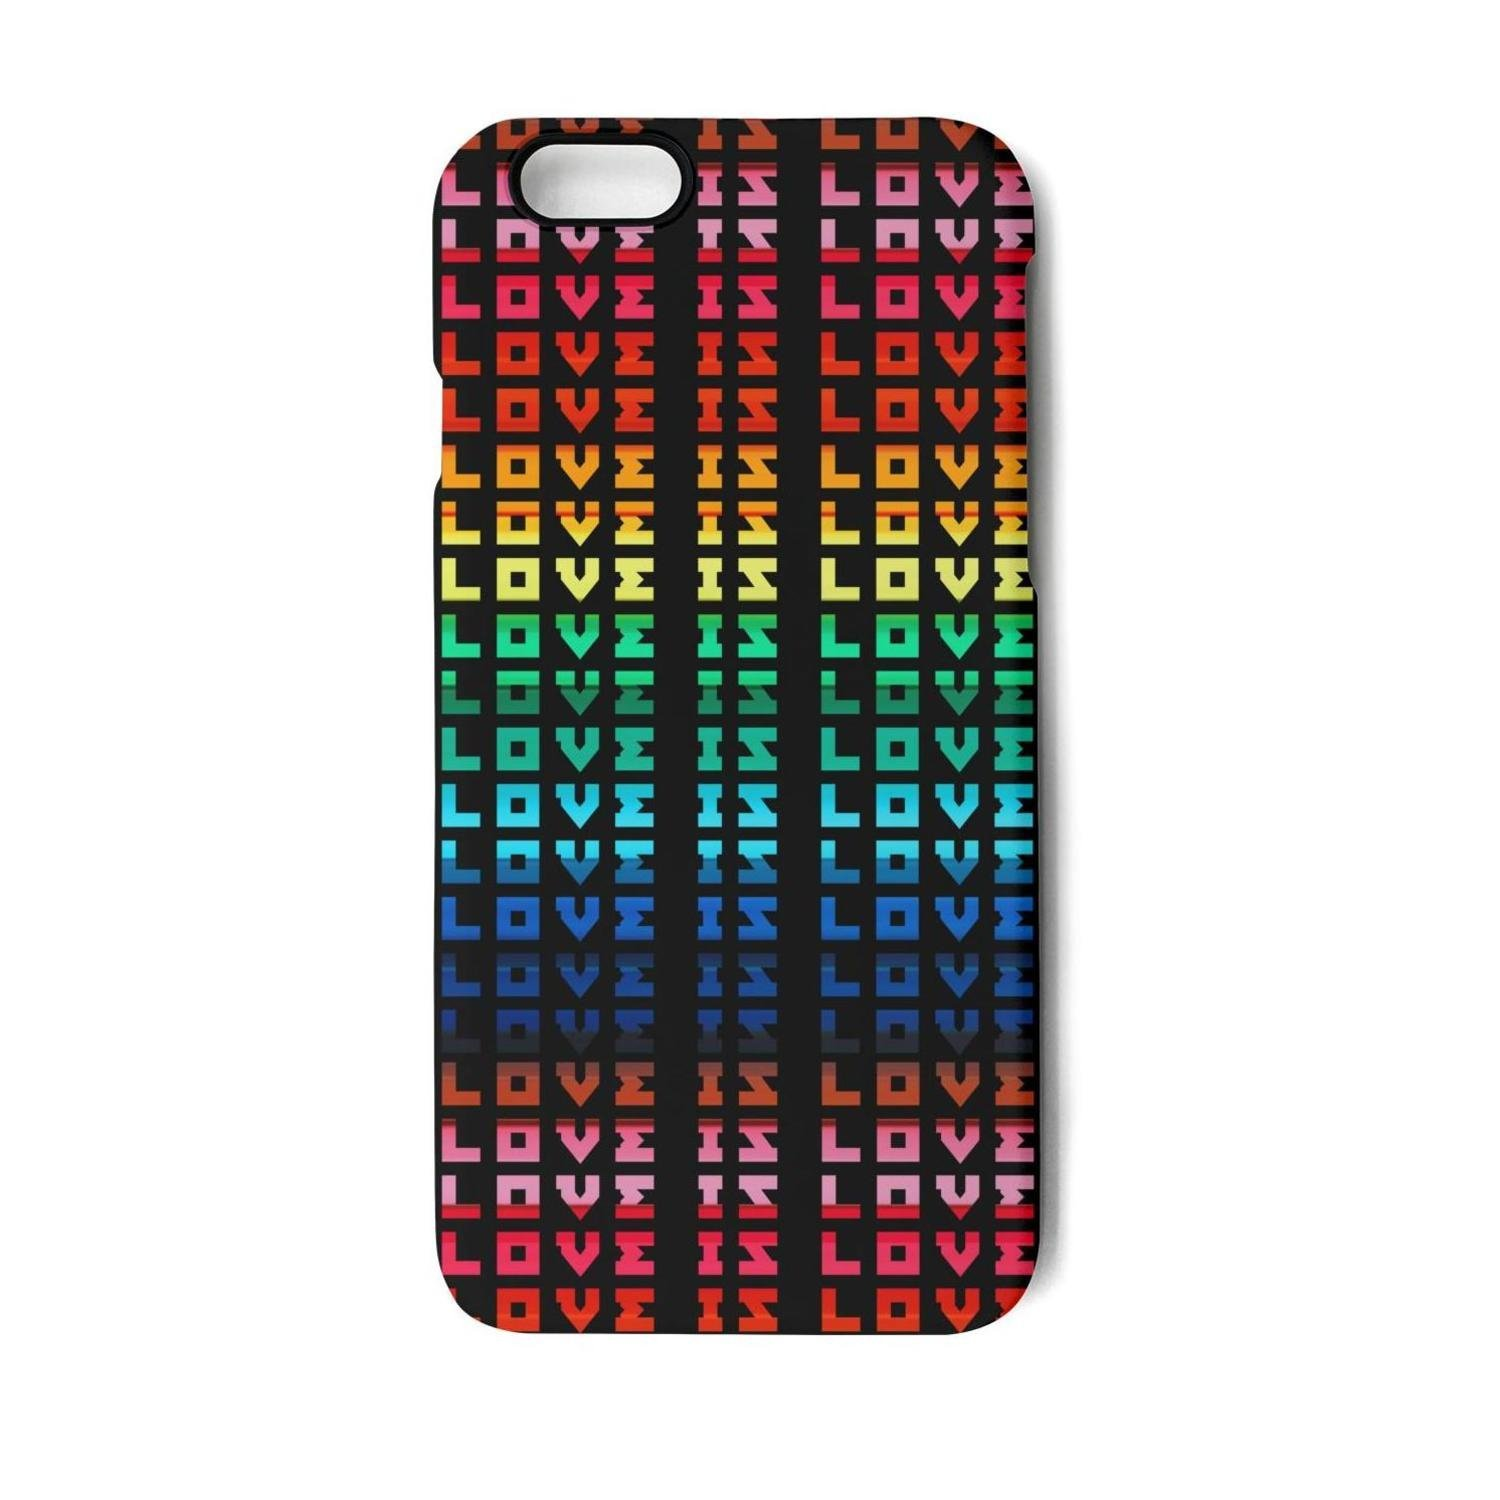 Amazon.com: Vekq iPhone 6/6s Case Love is Love retro Rainbow Gay Lesbian  Shock Absorption Soft TPU Back Cover Compatible with iPhone 6/6s: Cell  Phones & ...